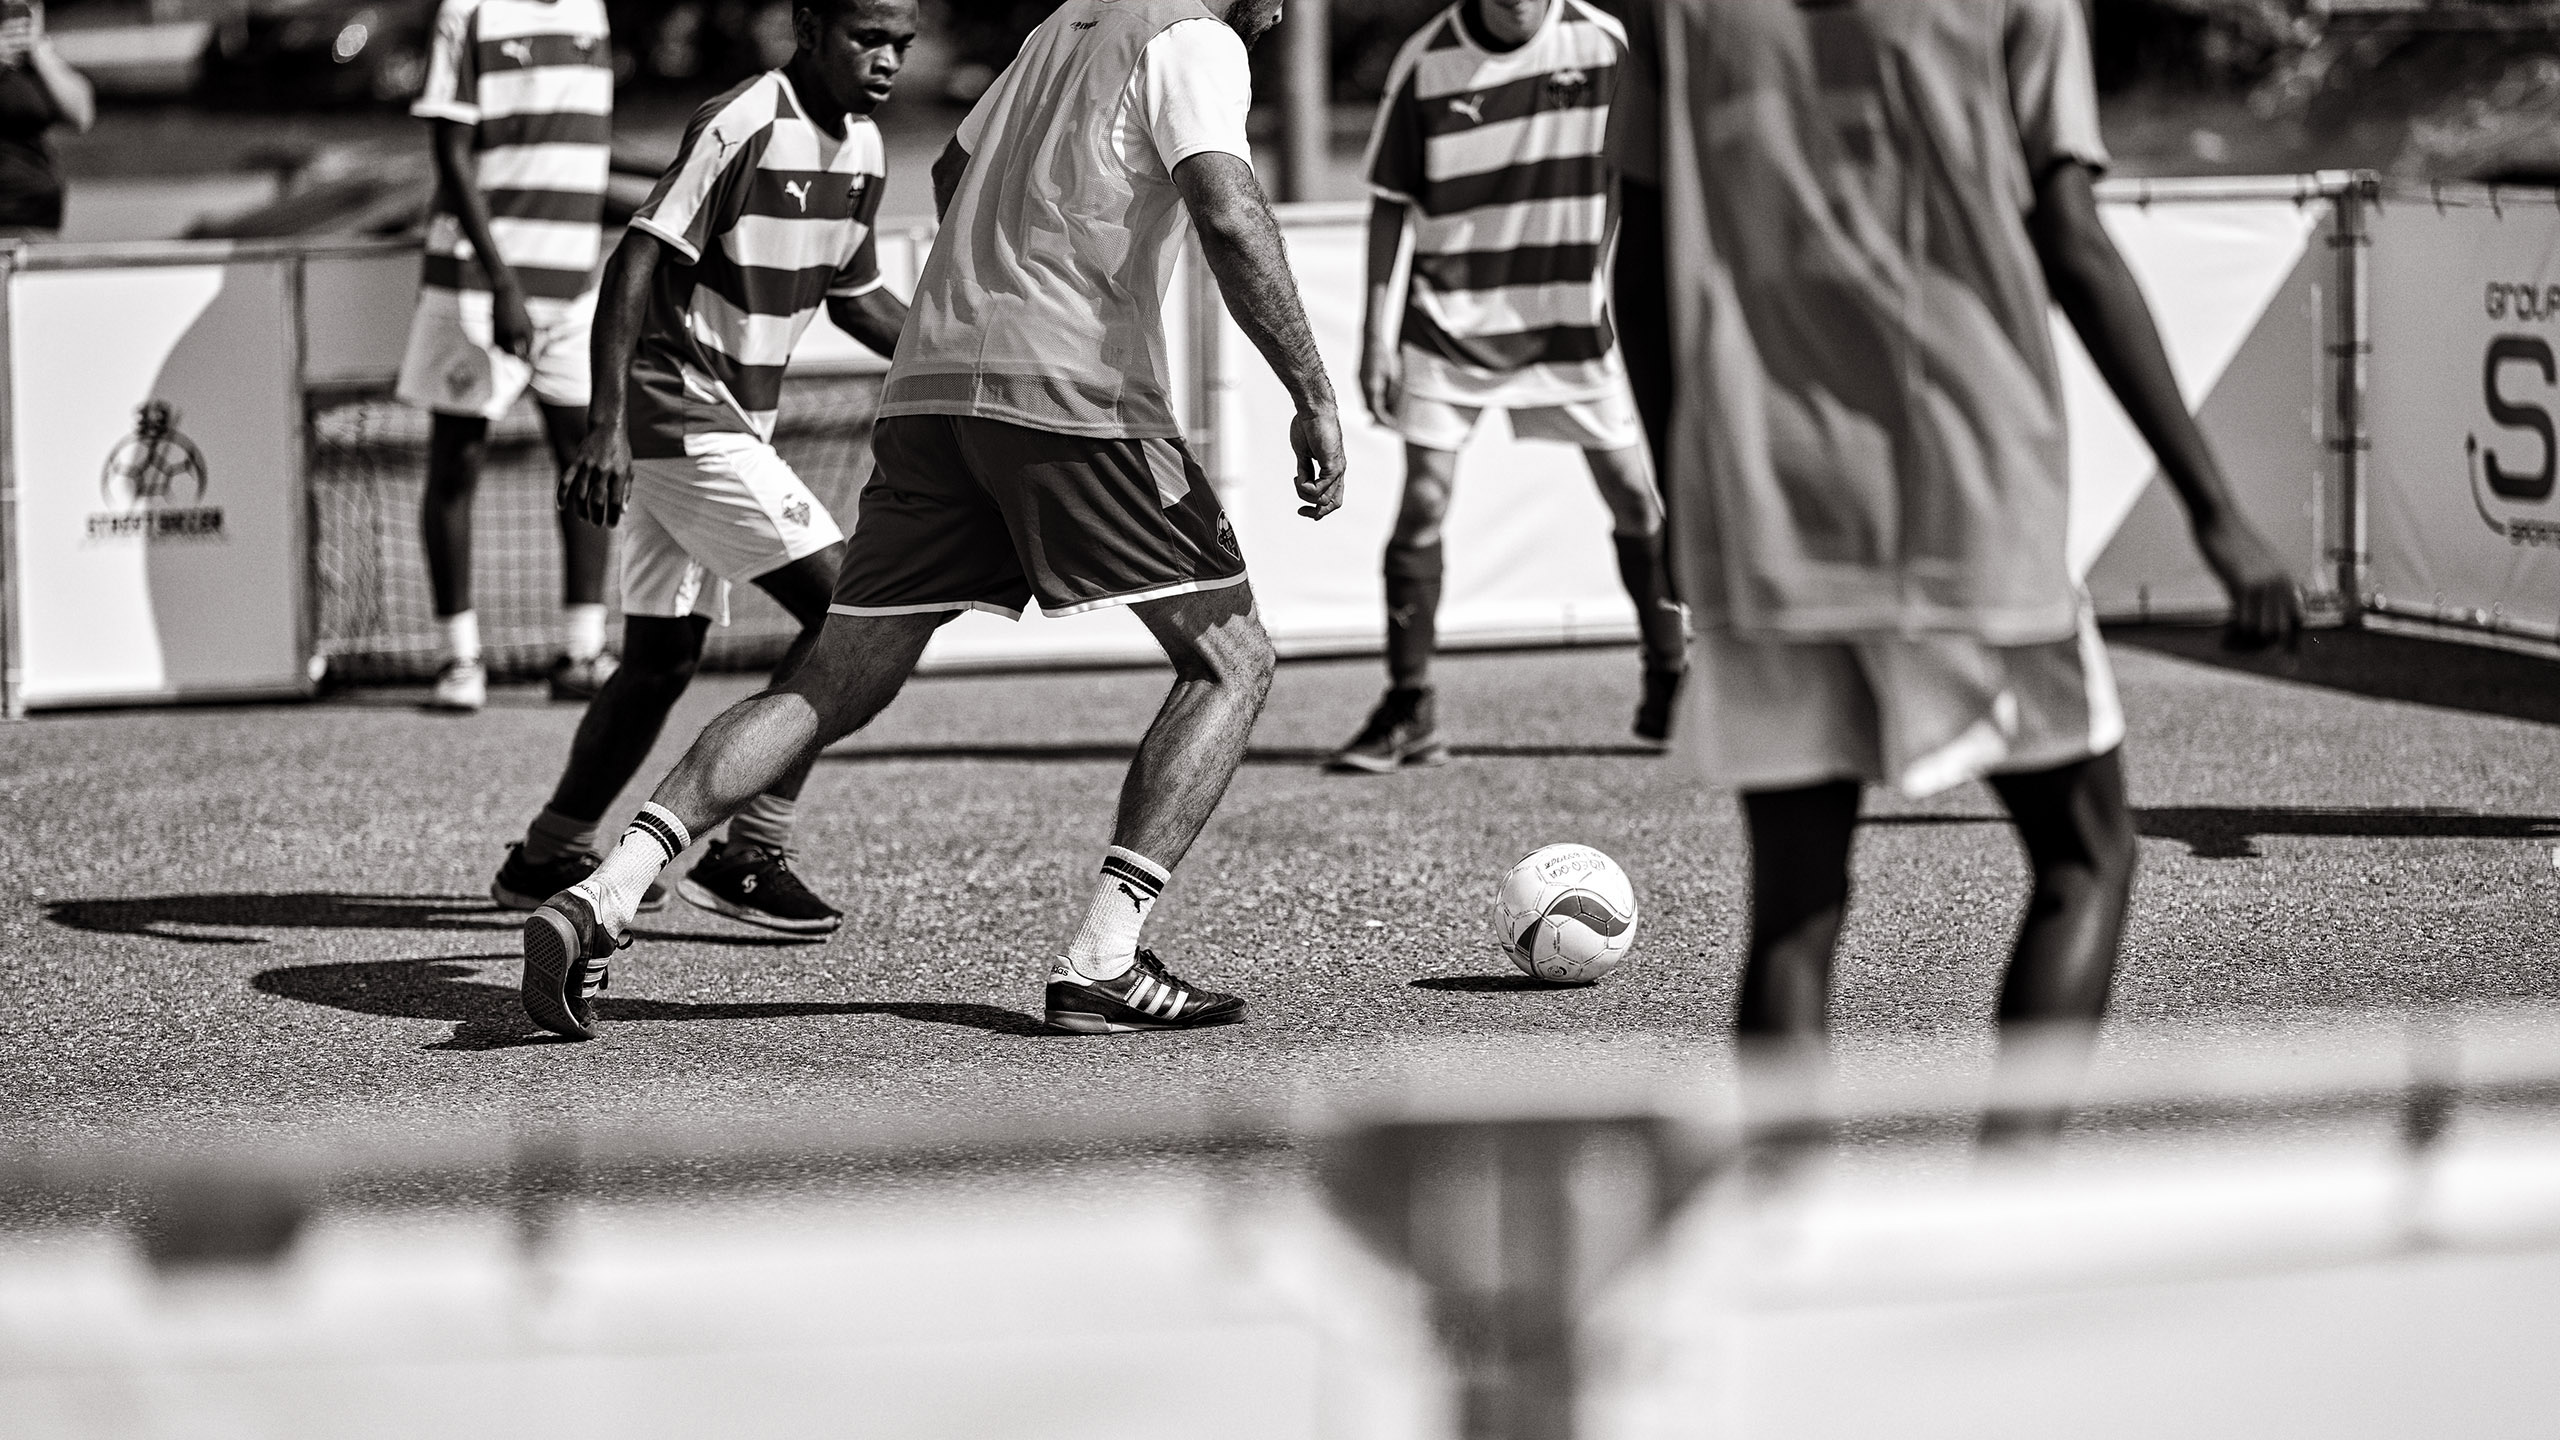 Black and white street soccer players